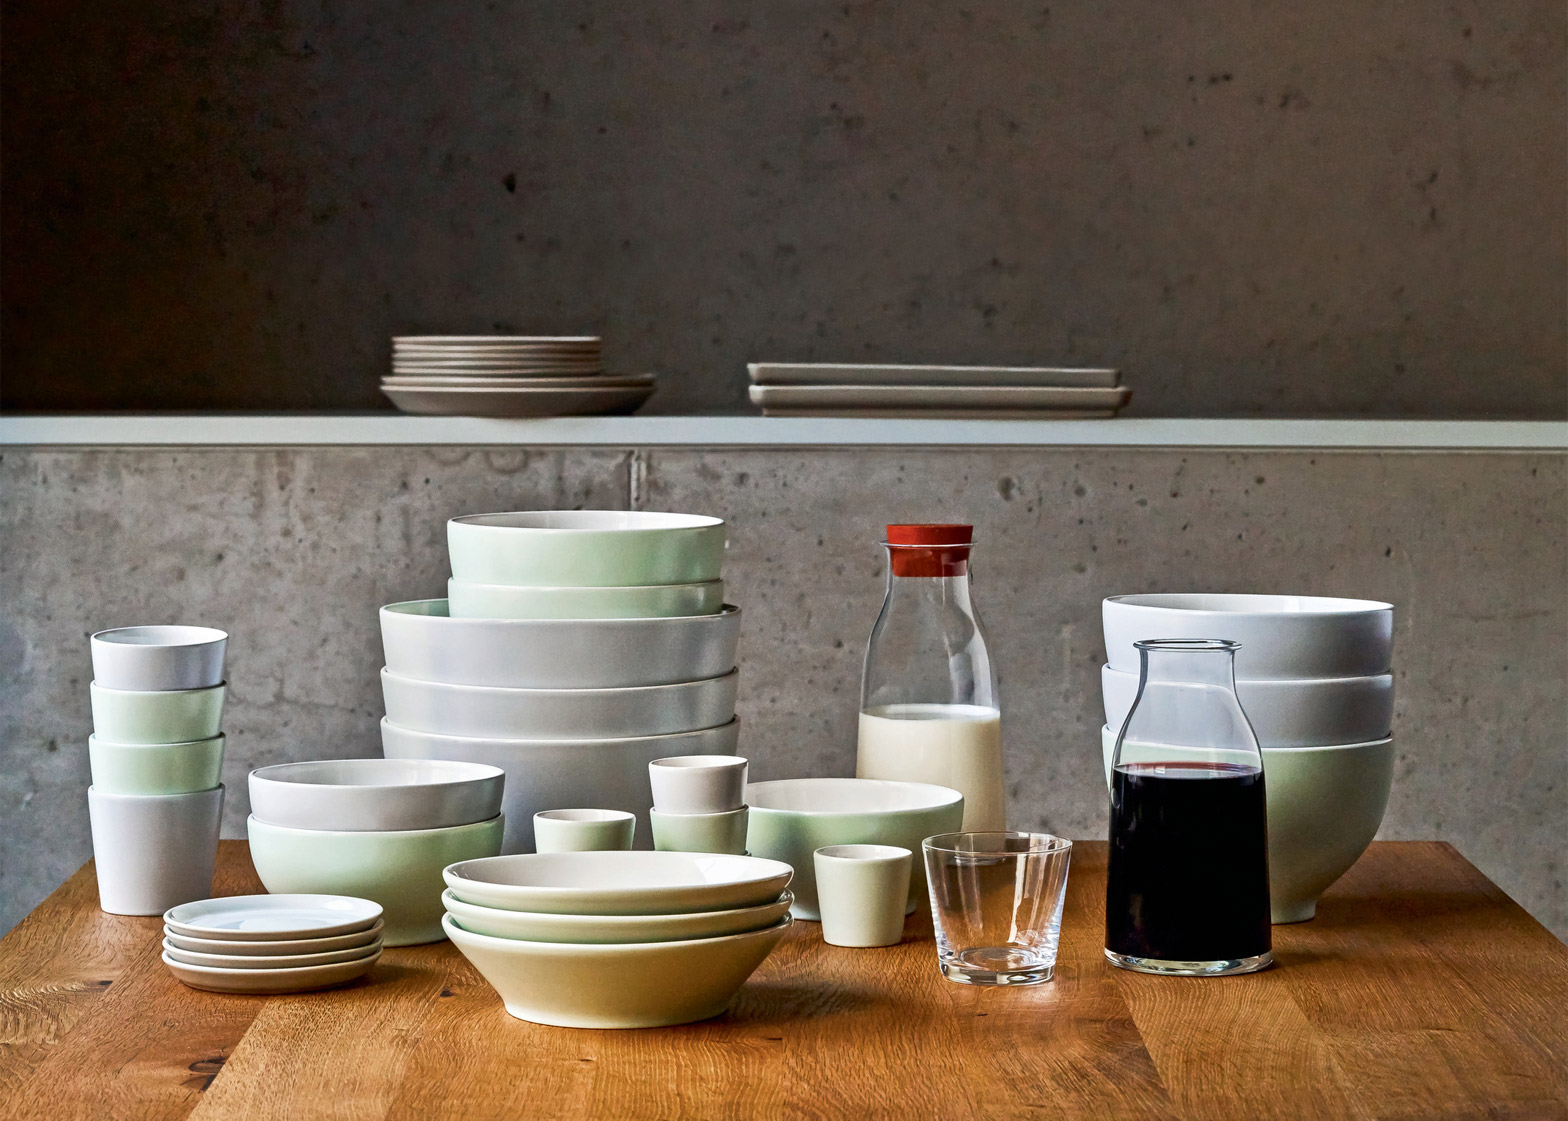 David Chipperfield ceramics for Alessi SS16 & David Chipperfield adds to Tonale ceramics range for Alessi